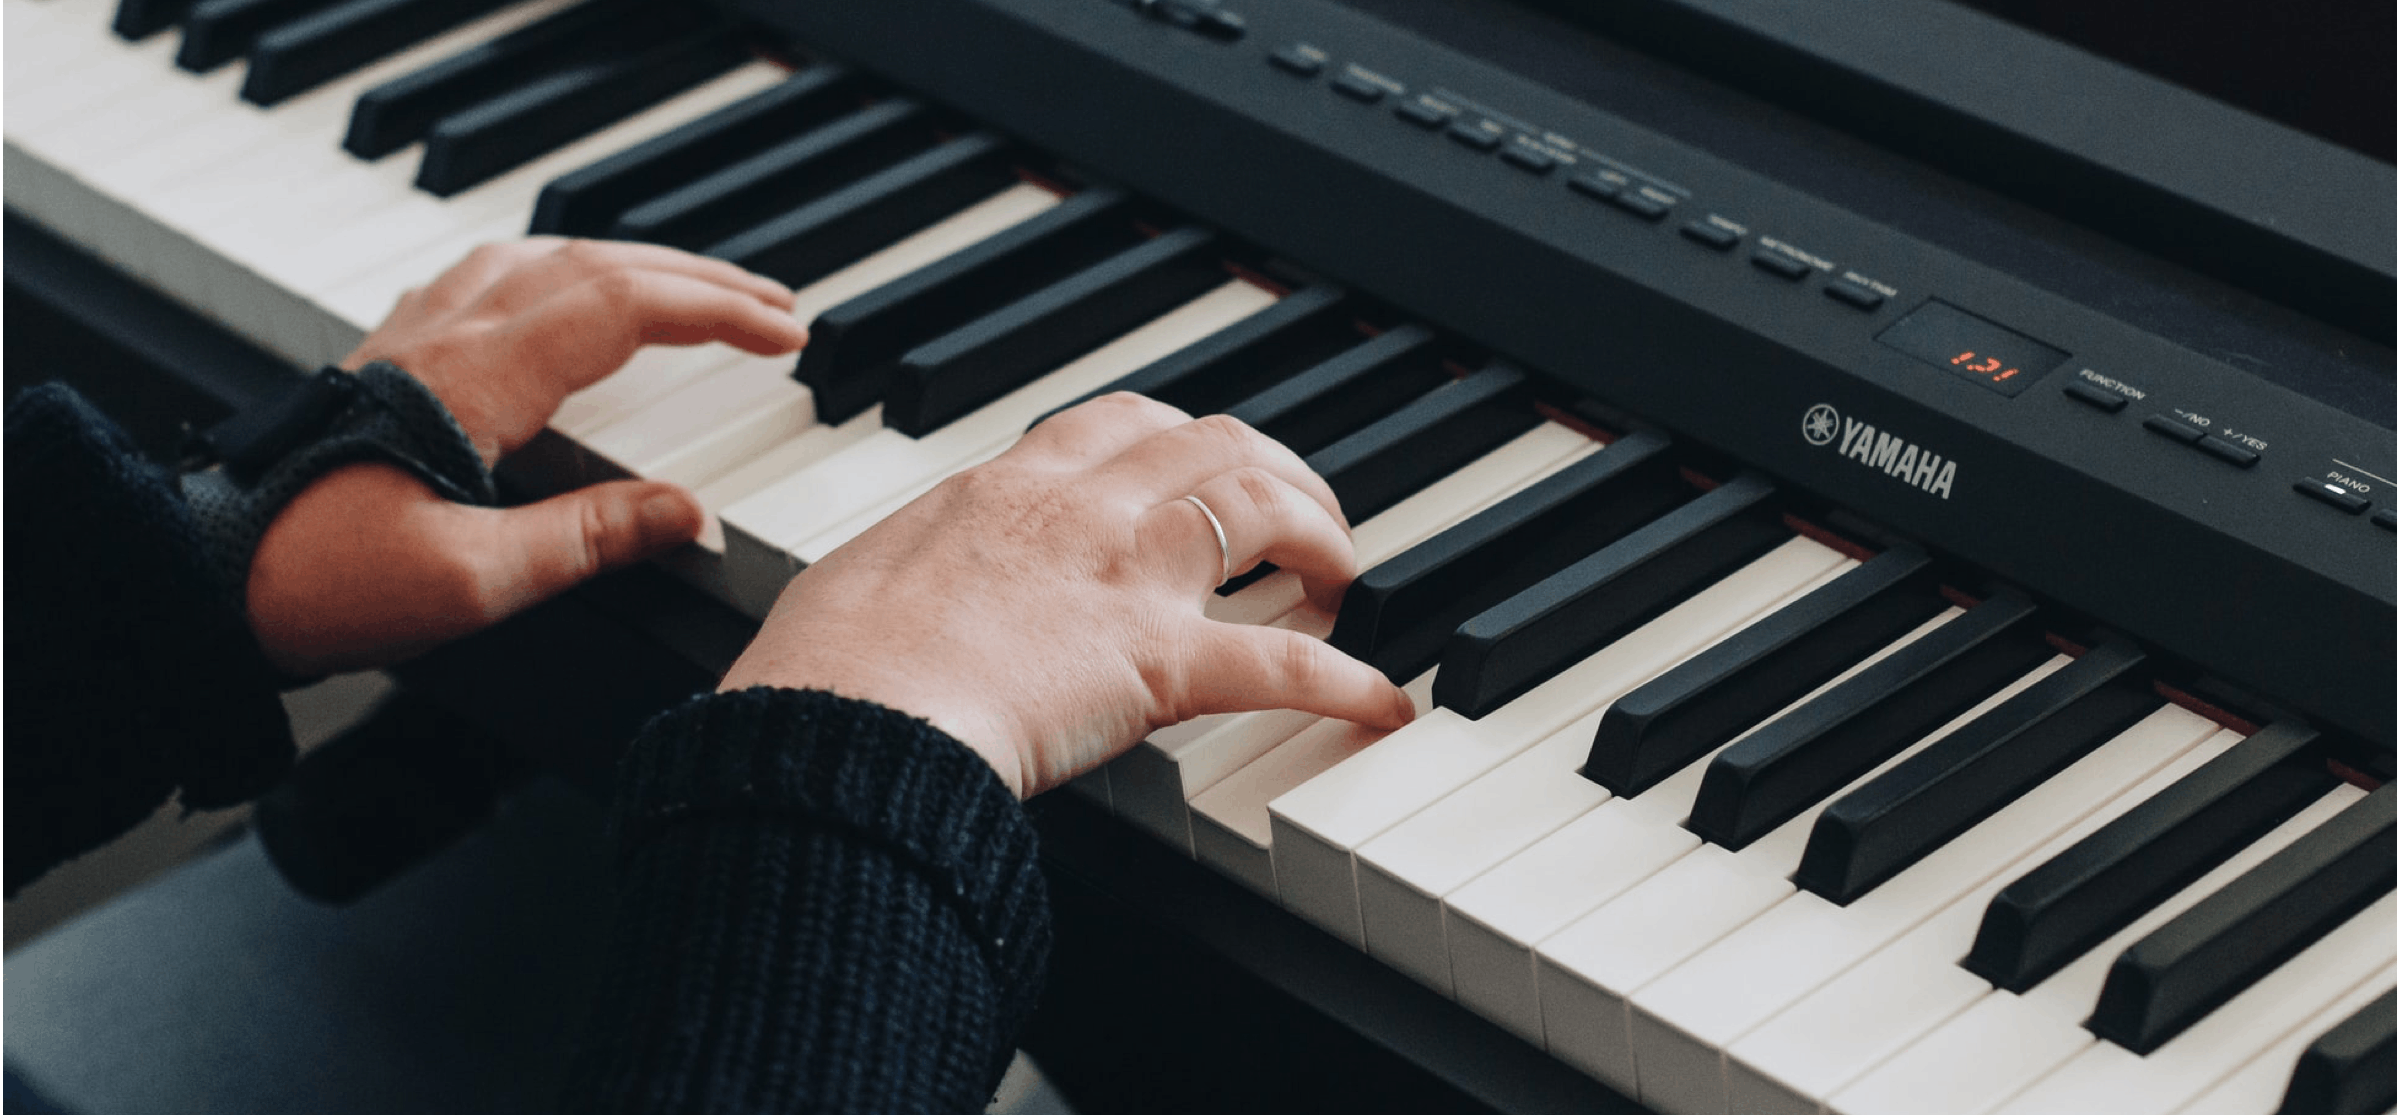 Two hands playing on a Yamaha keyboard